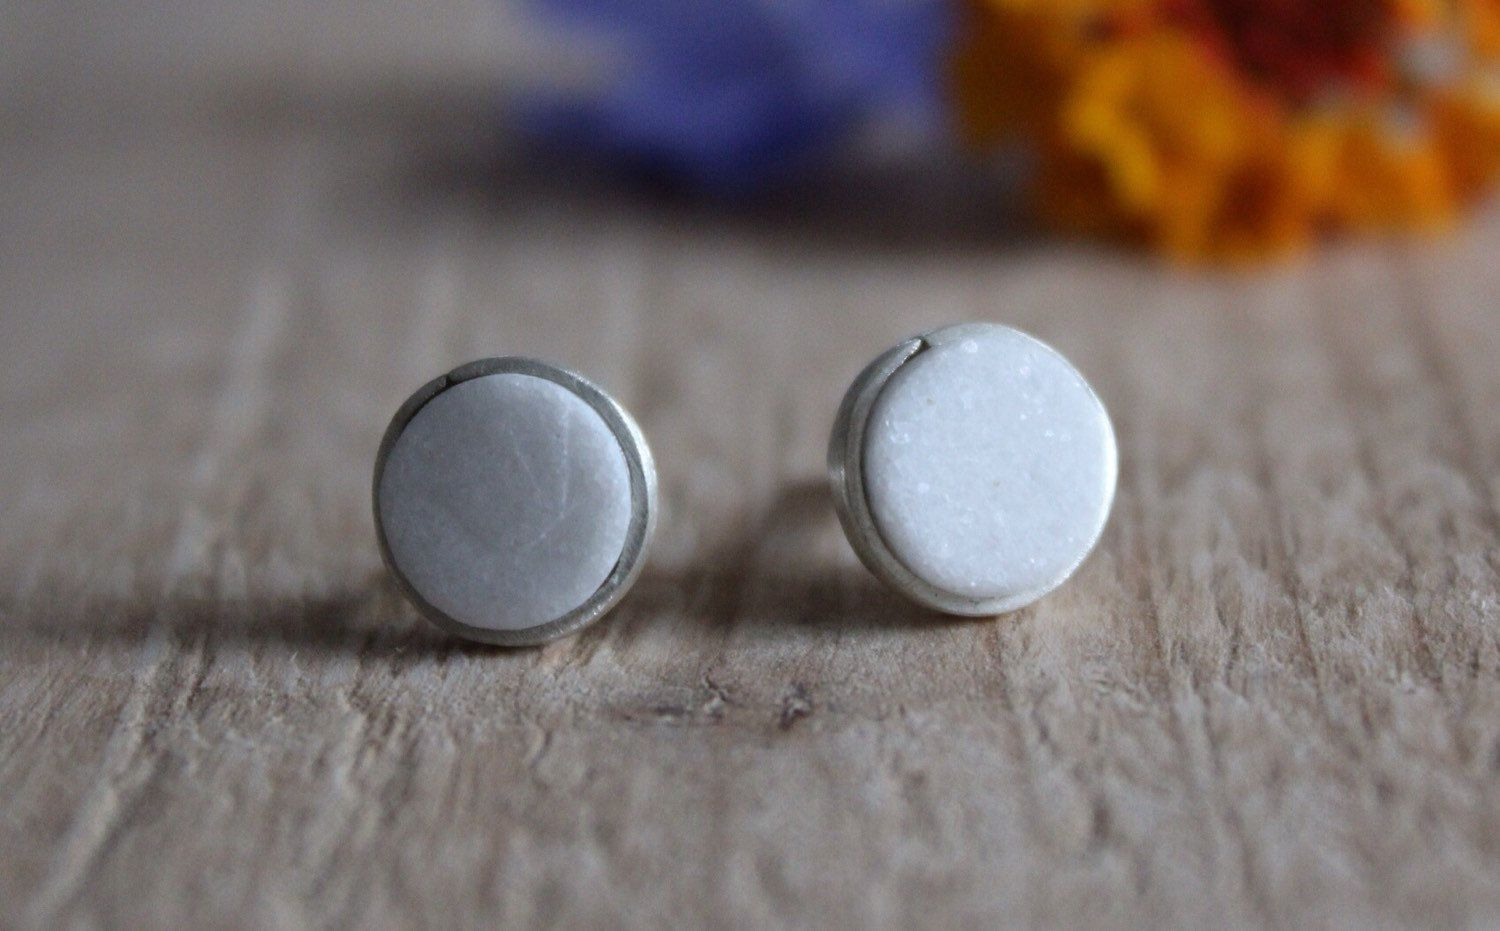 Small silver studs earrings , tiny cute round white marble stone earrings, white round stone studs, everyday little stud earrings by albertomilanese on Etsy